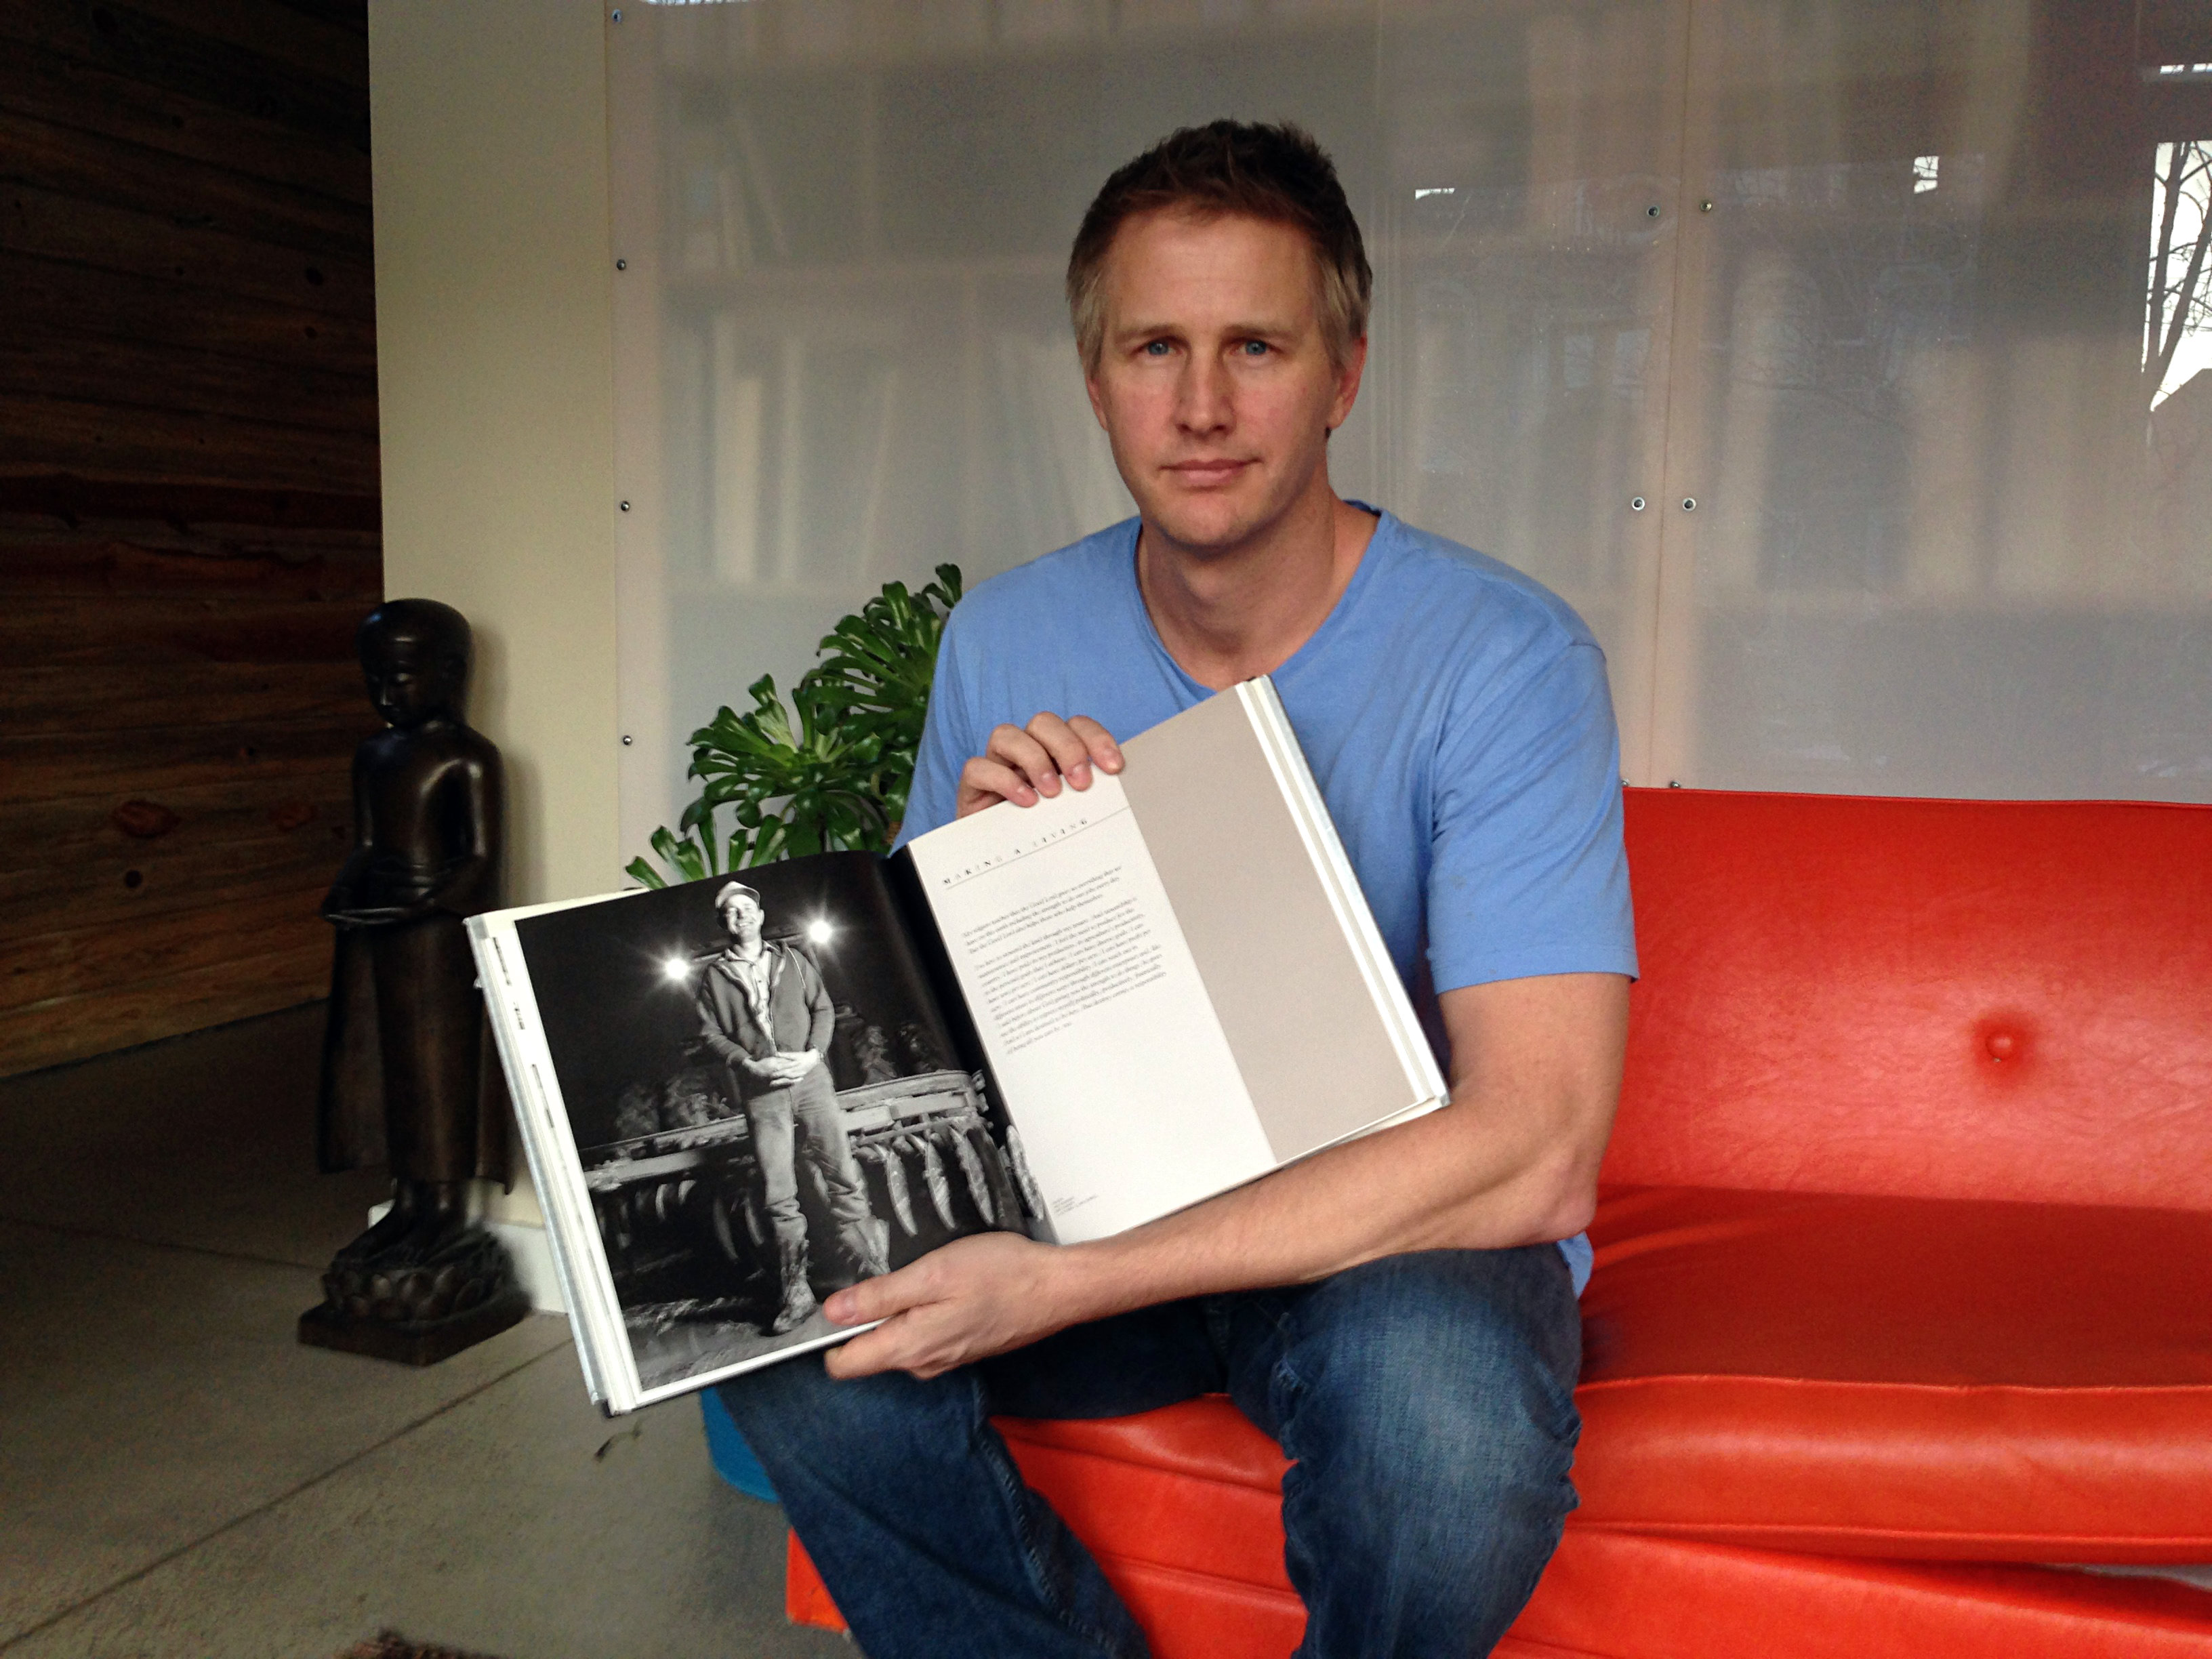 Photo: Daniel Junge with his father's book